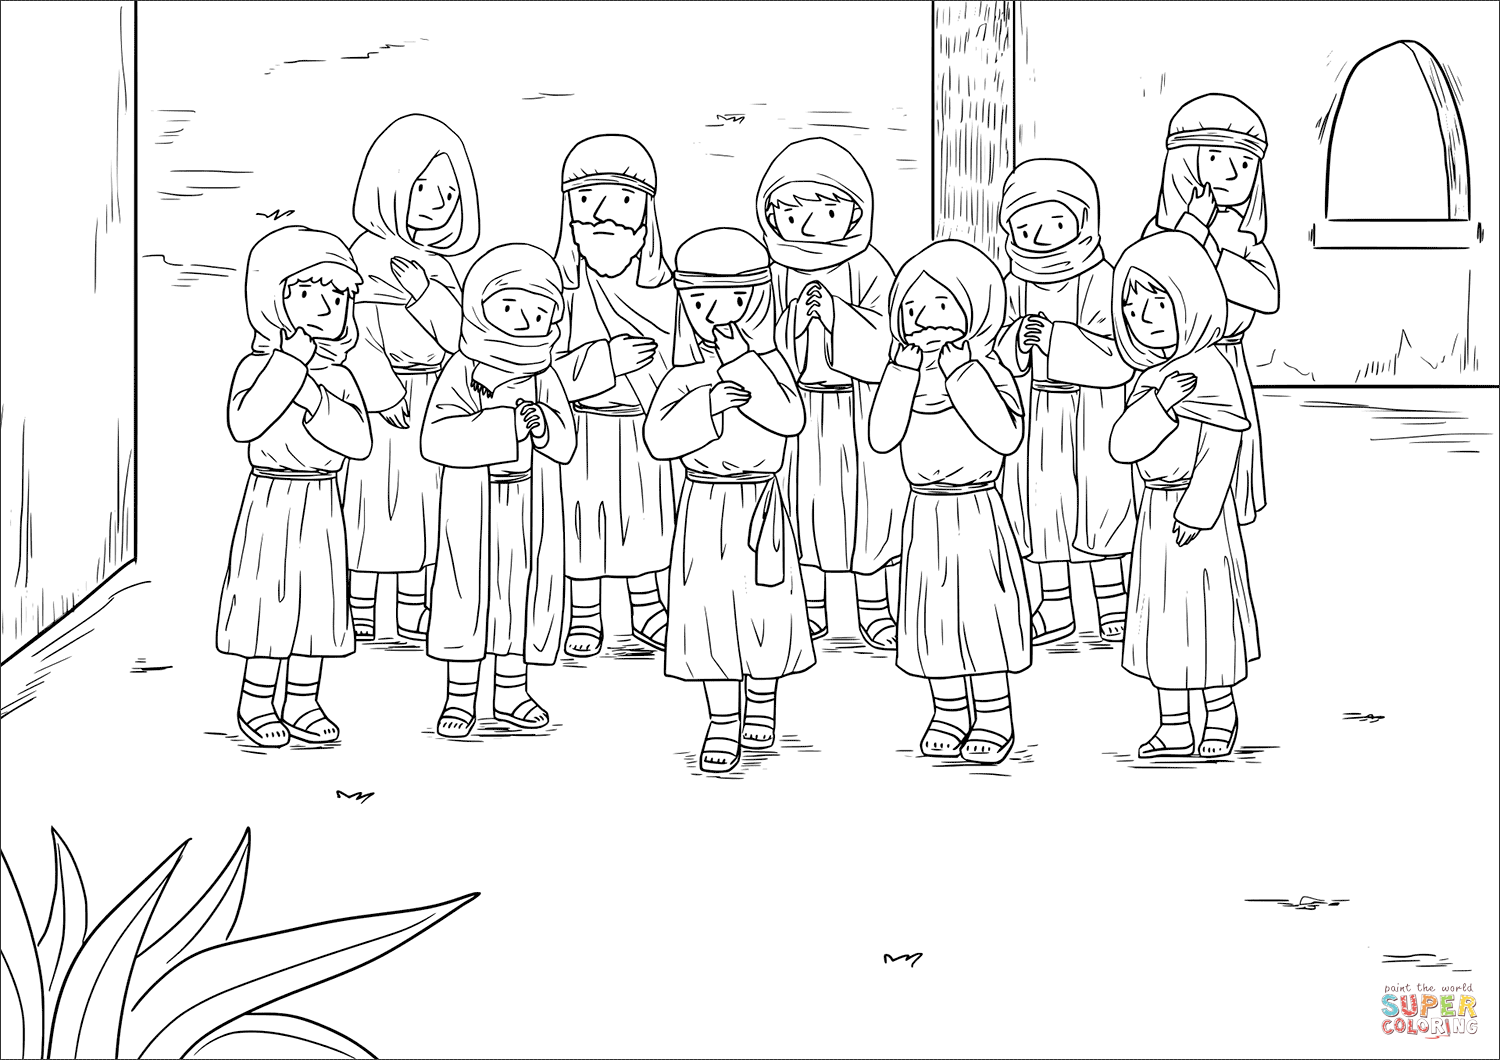 jesus heals the leper coloring page jesus heals a man with leprosy coloring page coloring pages coloring leper the heals page jesus